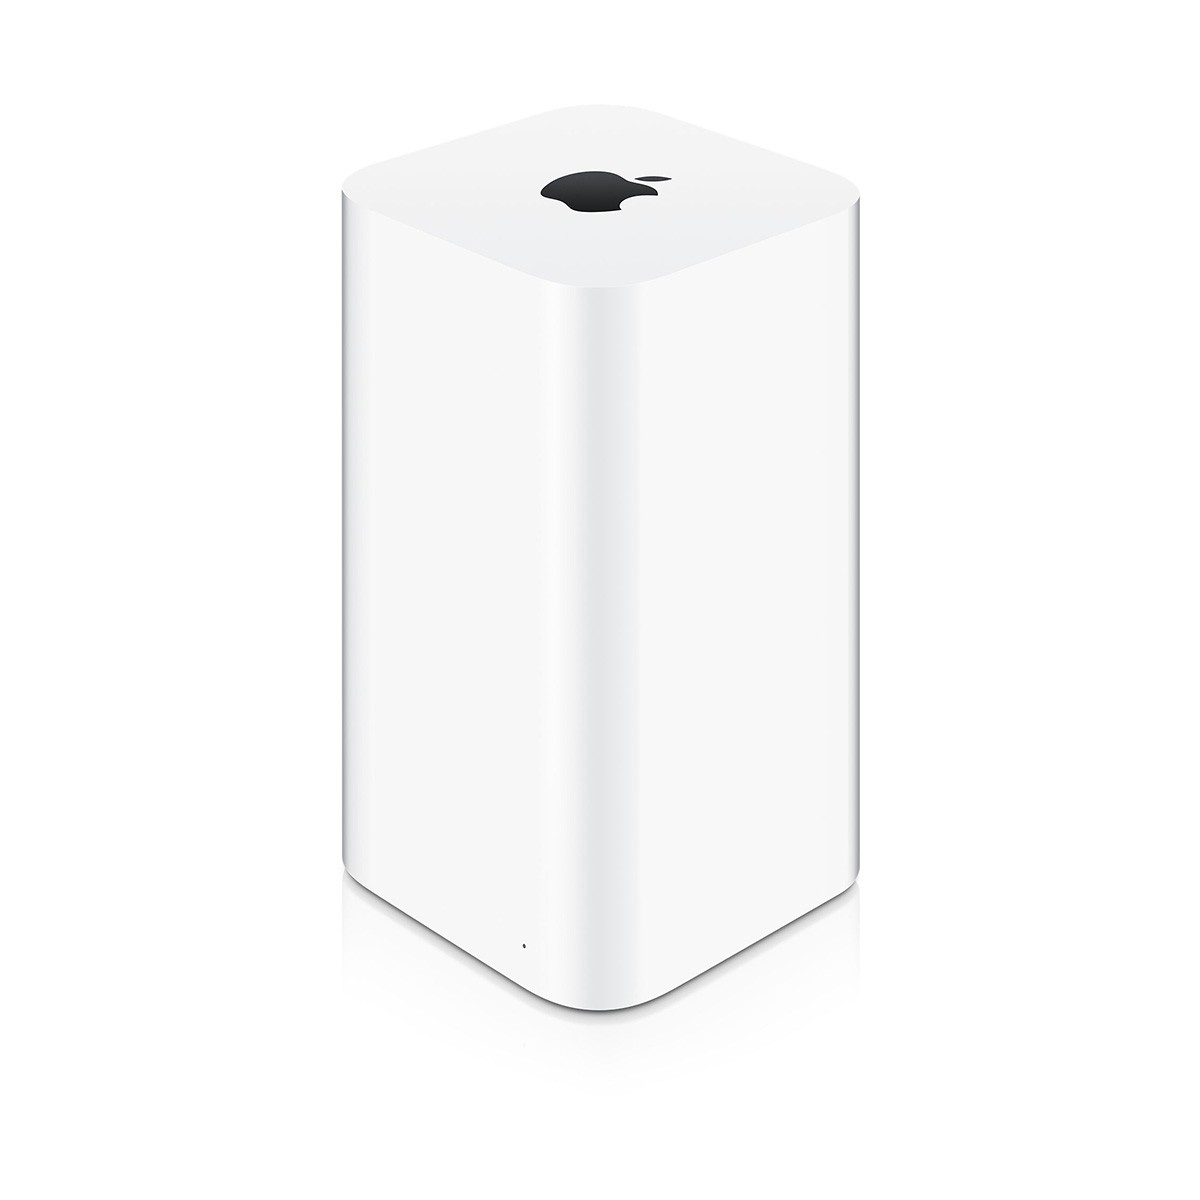 Apple AirPort Time Capsule – 3 TB me182z/a